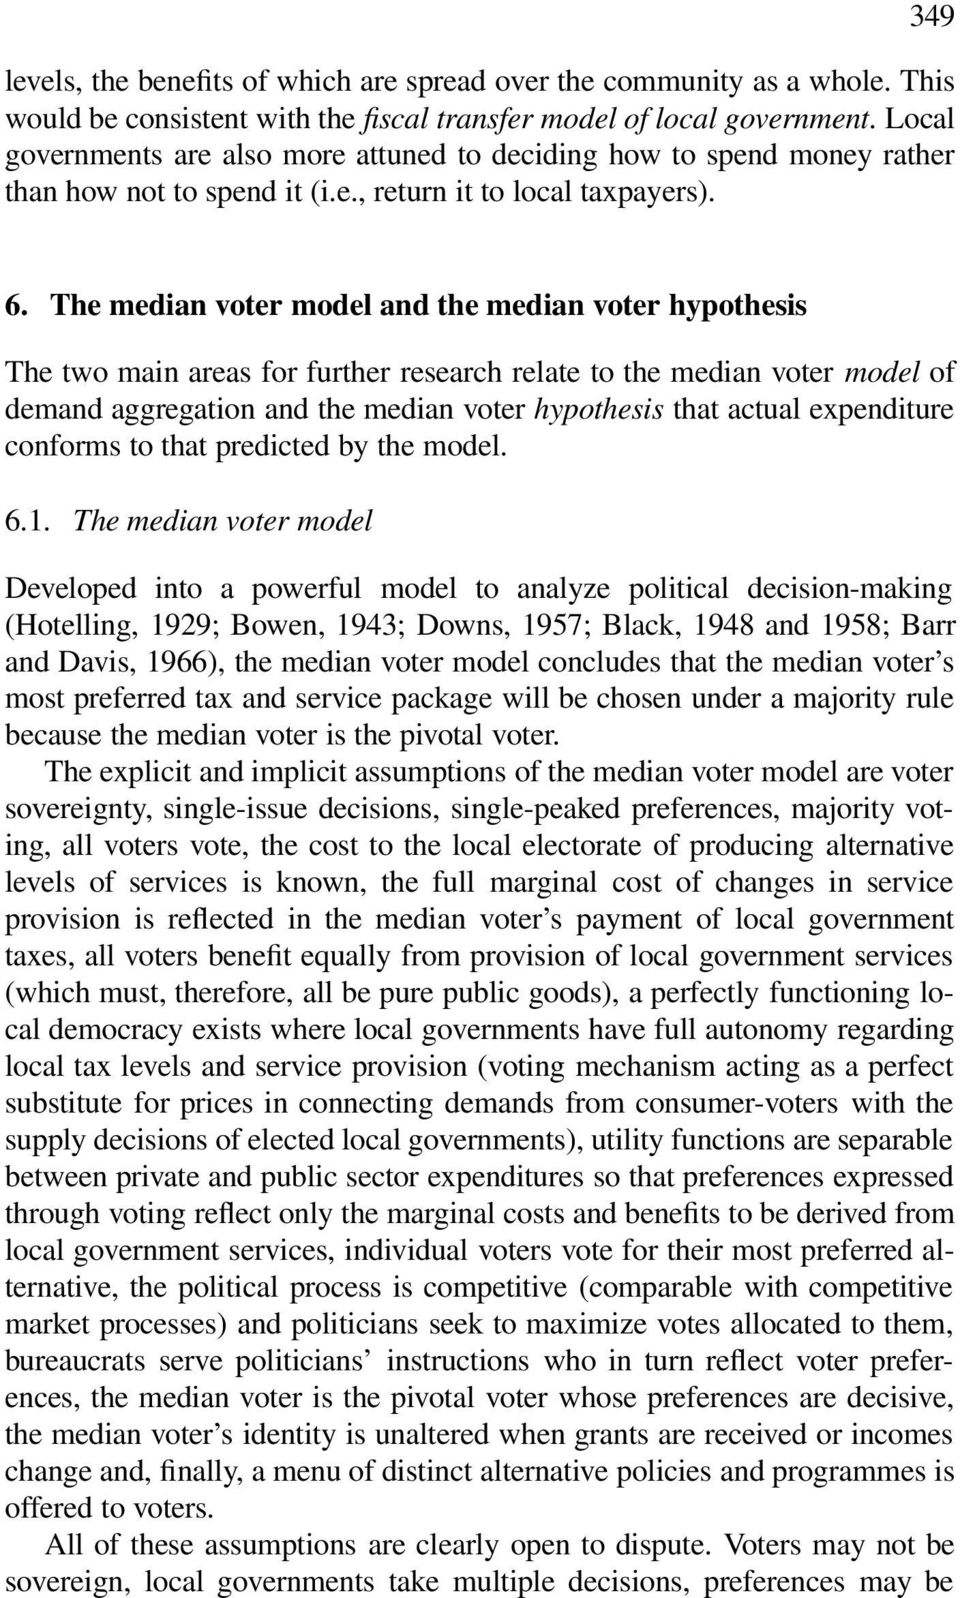 The median voter model and the median voter hypothesis The two main areas for further research relate to the median voter model of demand aggregation and the median voter hypothesis that actual